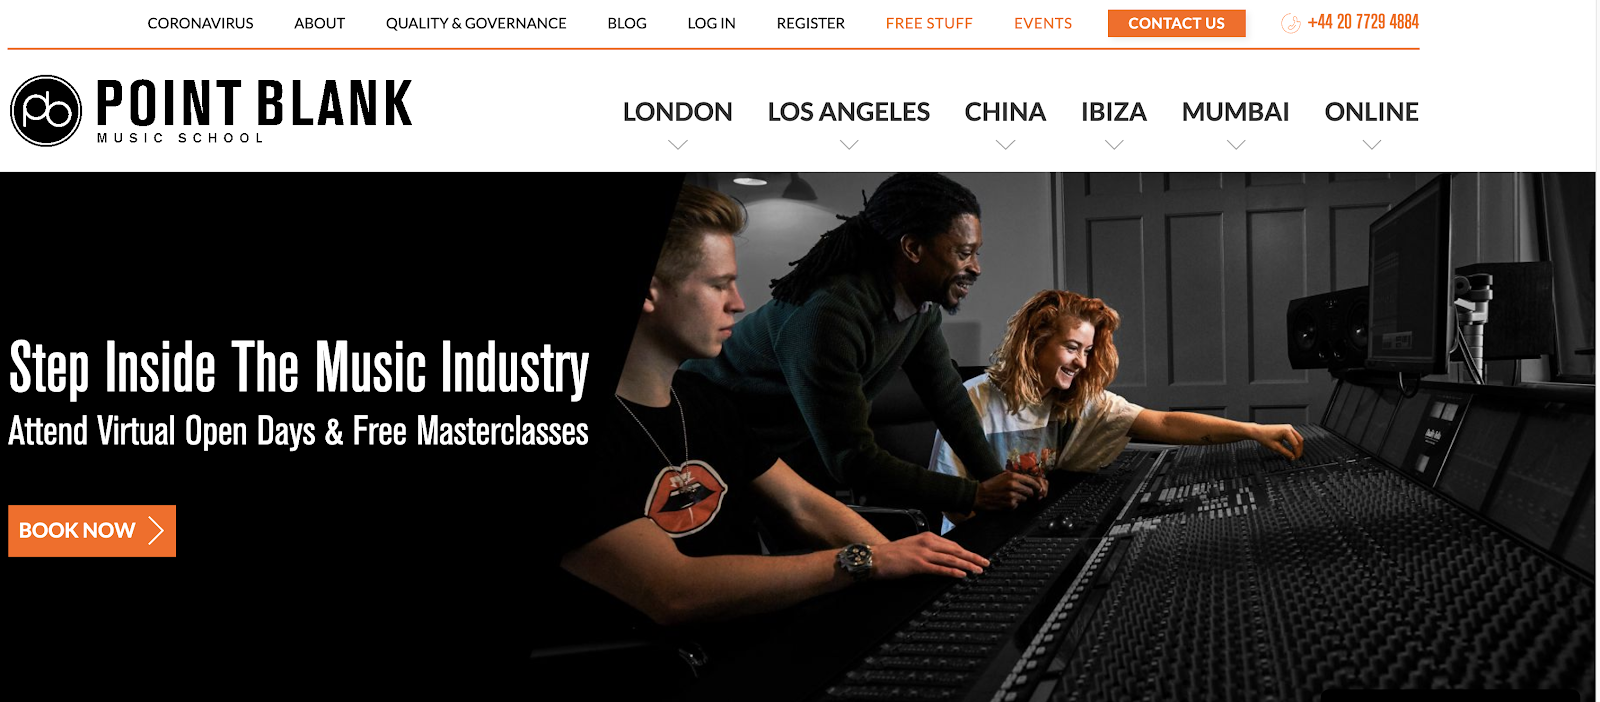 Point Blank Music School homepage with students learning in front of a mixing console.